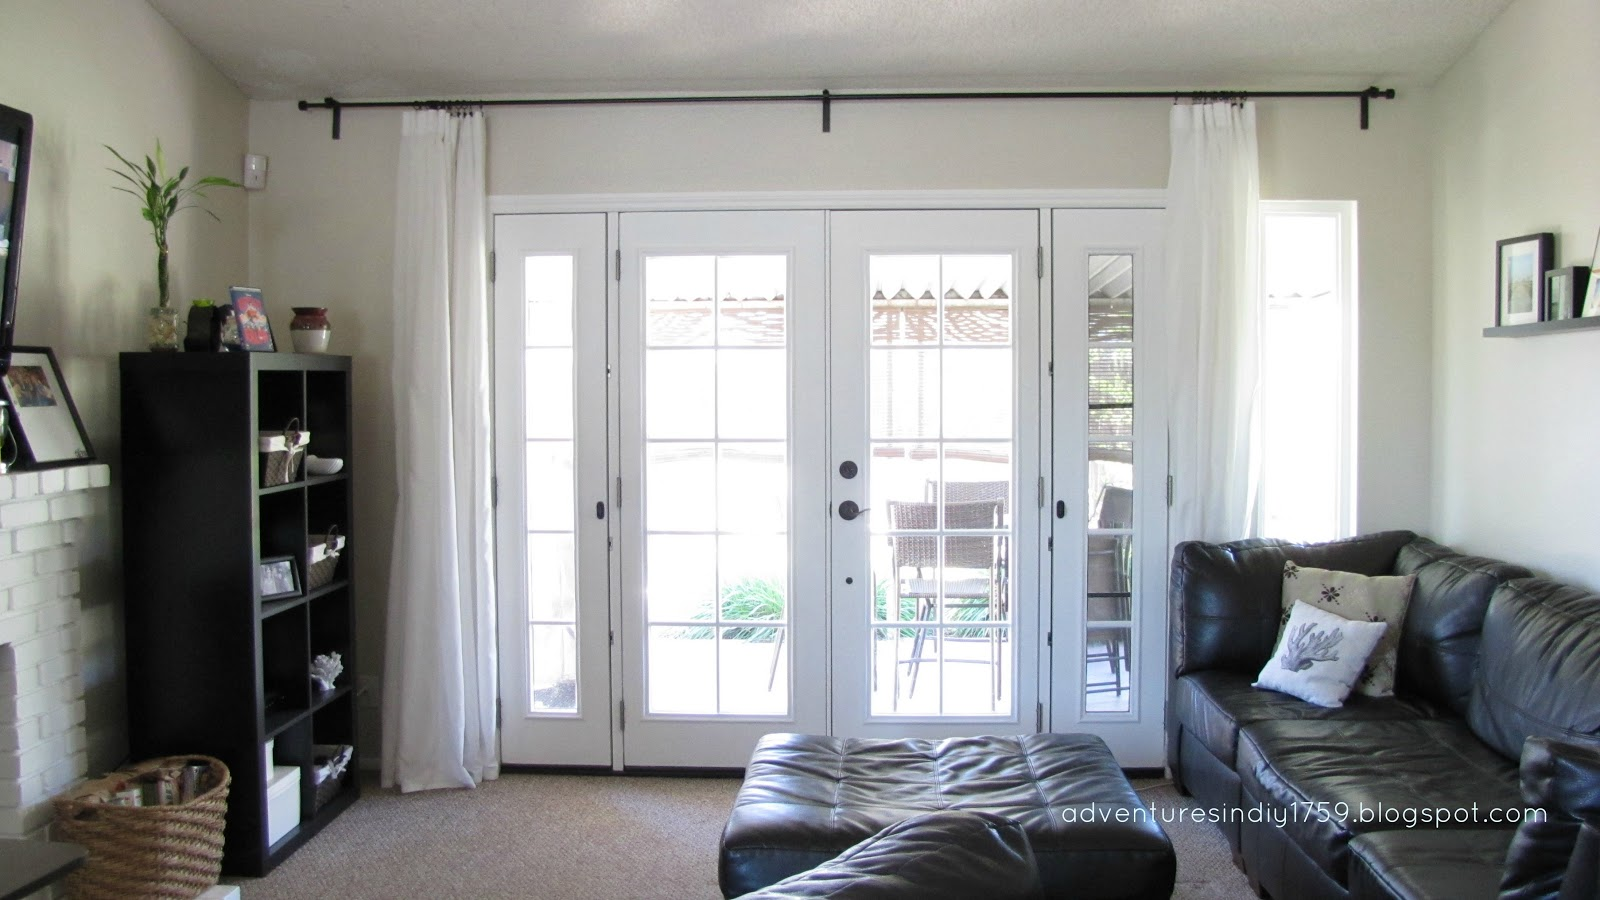 Window Treatment Ideas For French Doors Part - 19: Adventures In DIY